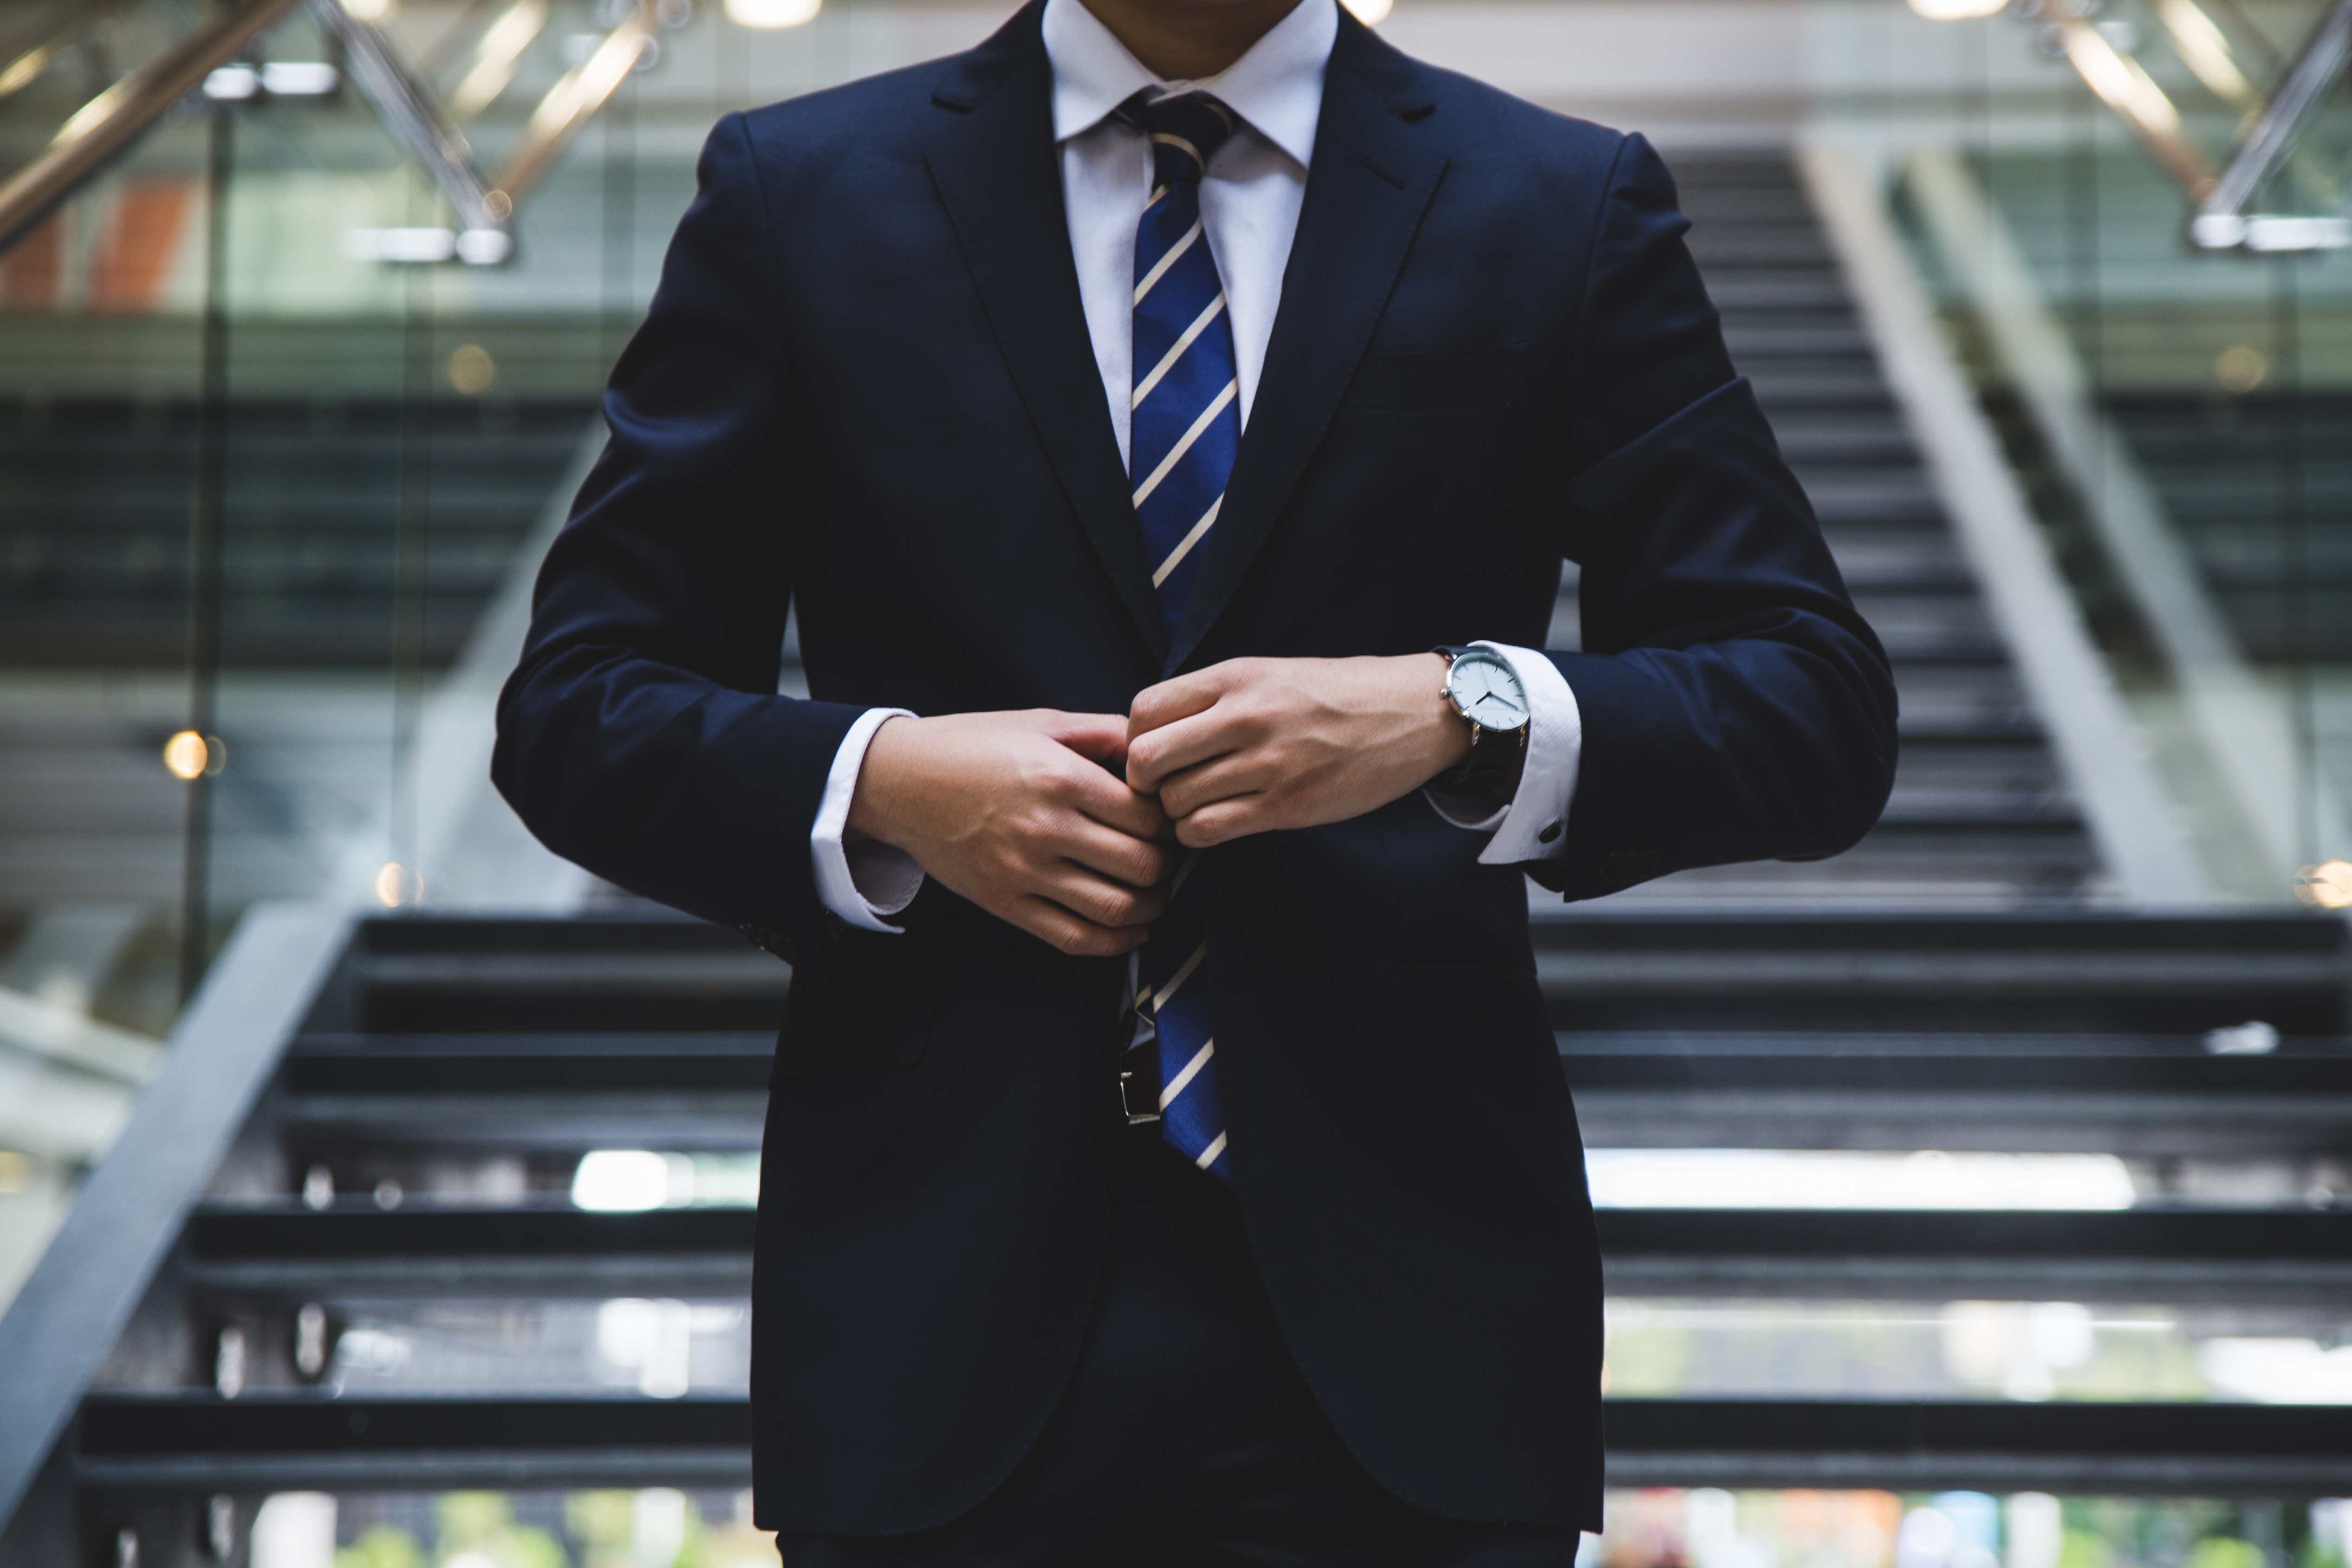 corporate ethics for gen Z torso of a man in a suit